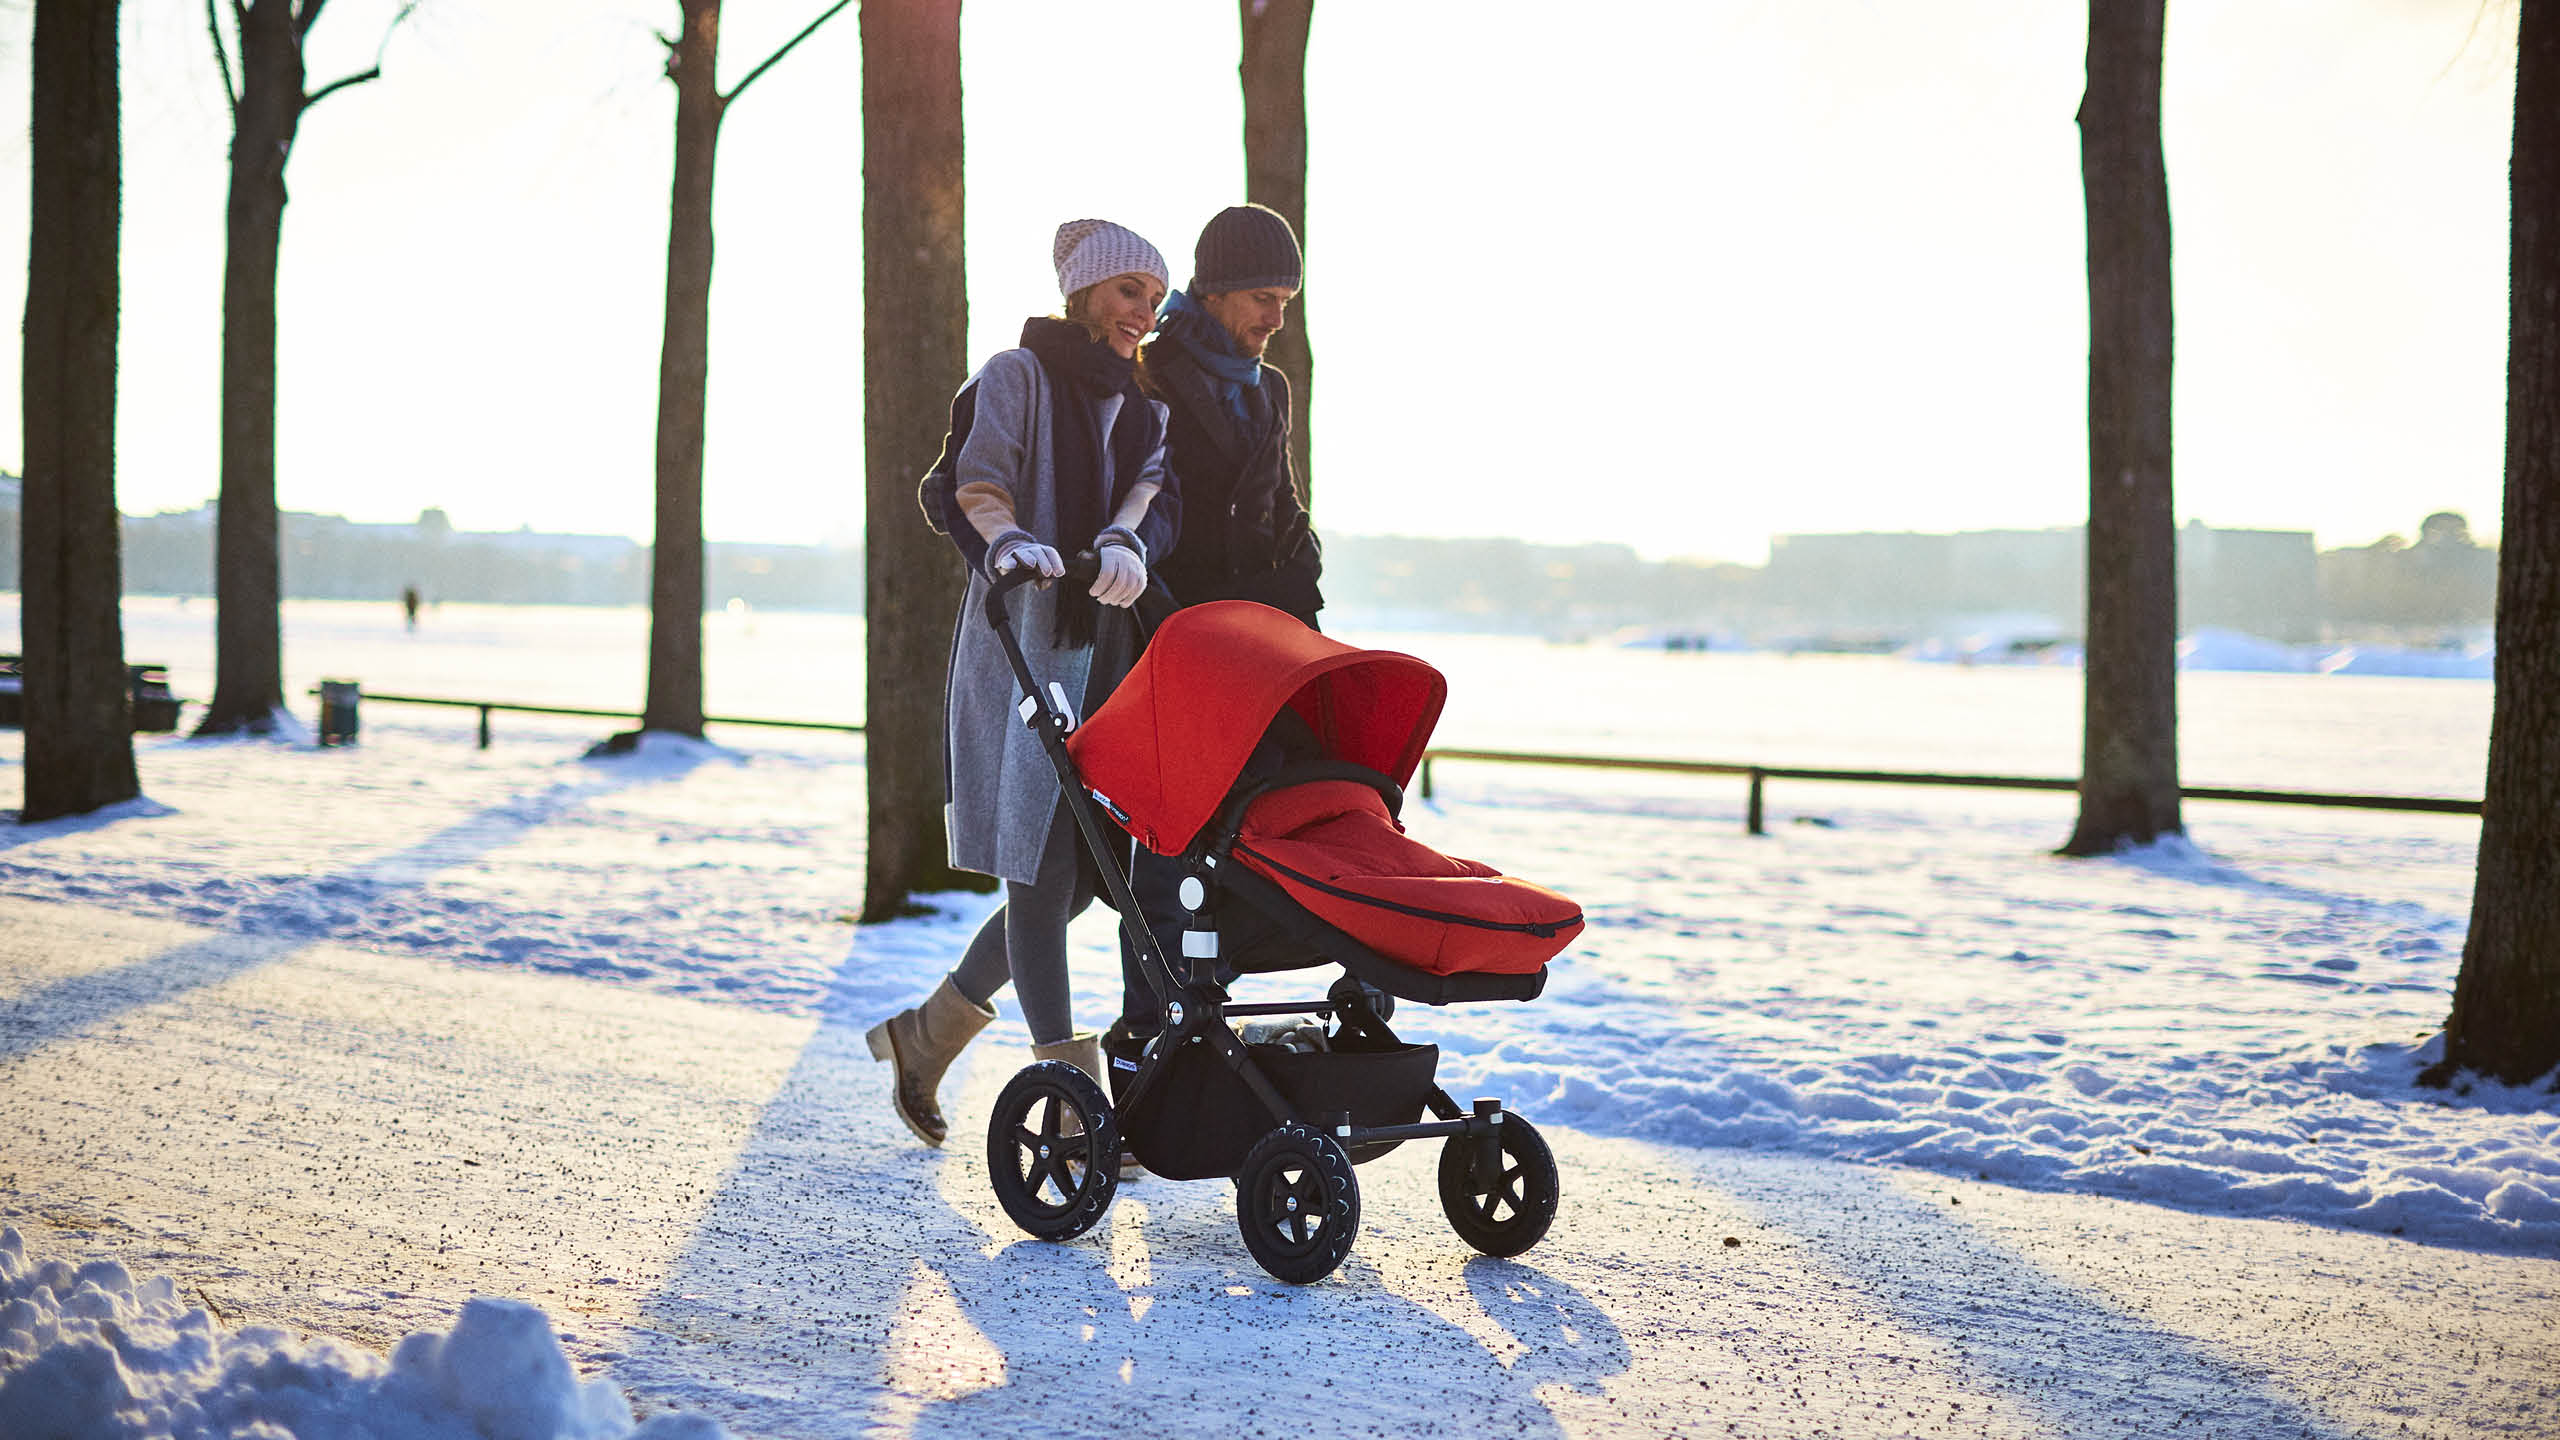 Use your stroller